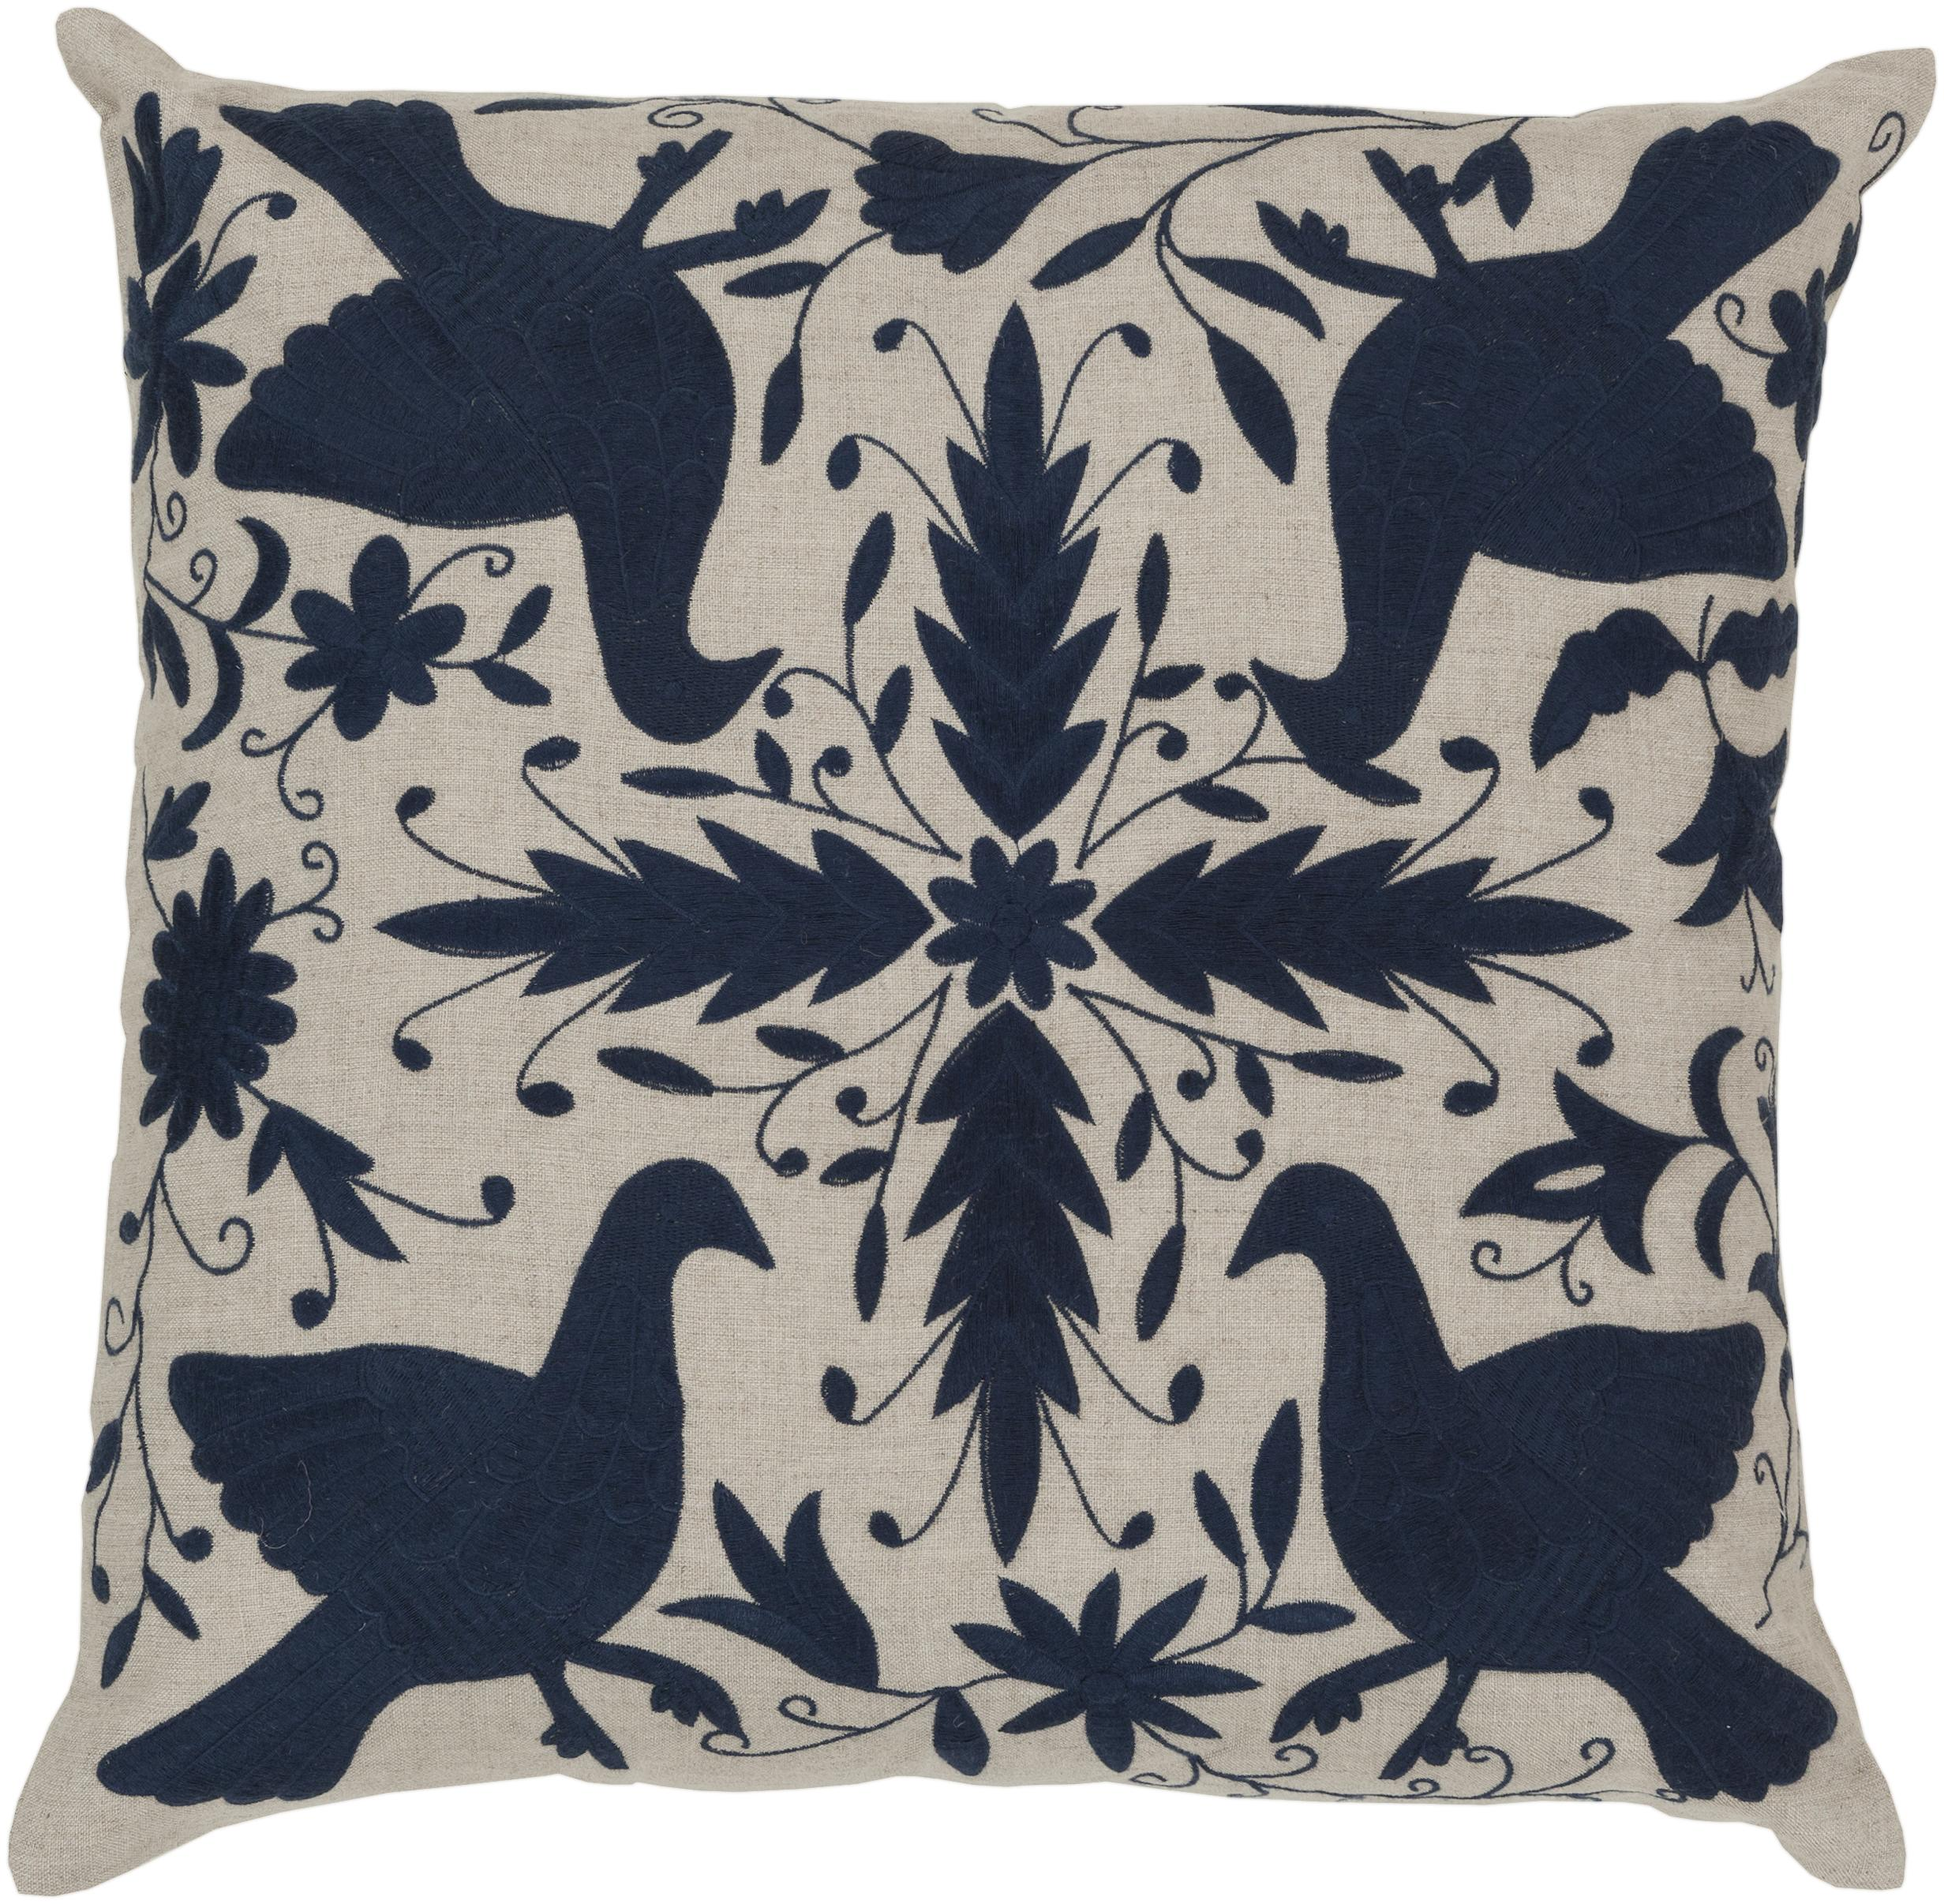 "Surya Pillows 20"" x 20"" Pillow - Item Number: LD020-2020P"